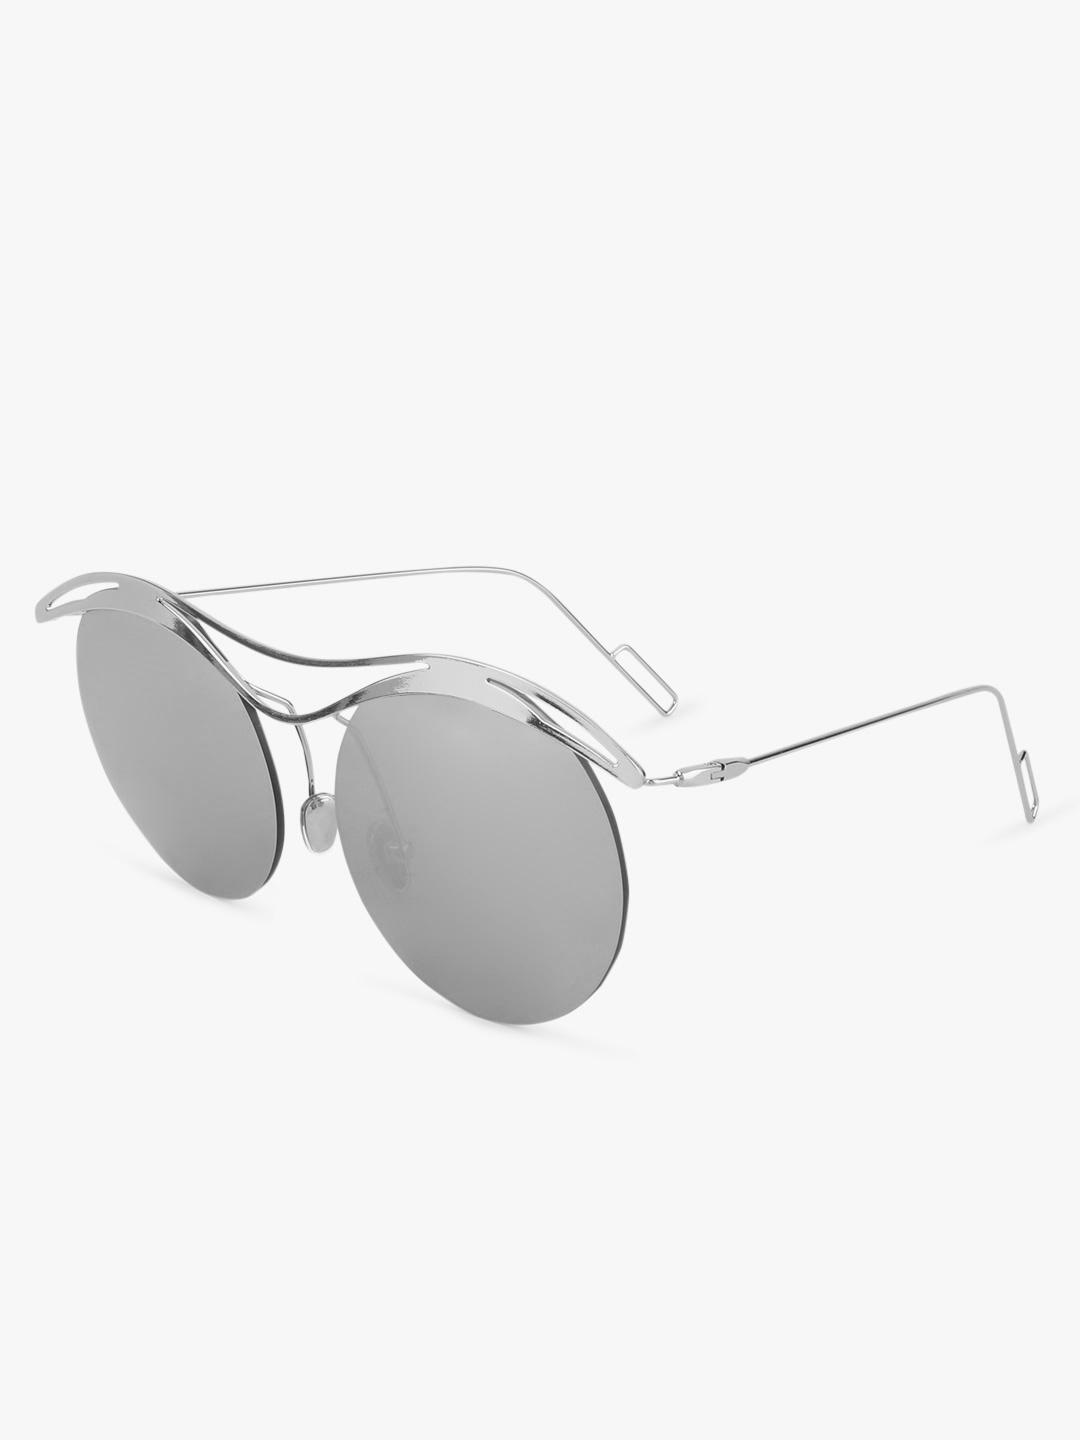 Style Fiesta Silver Double Bridge Retro Sunglasses 1